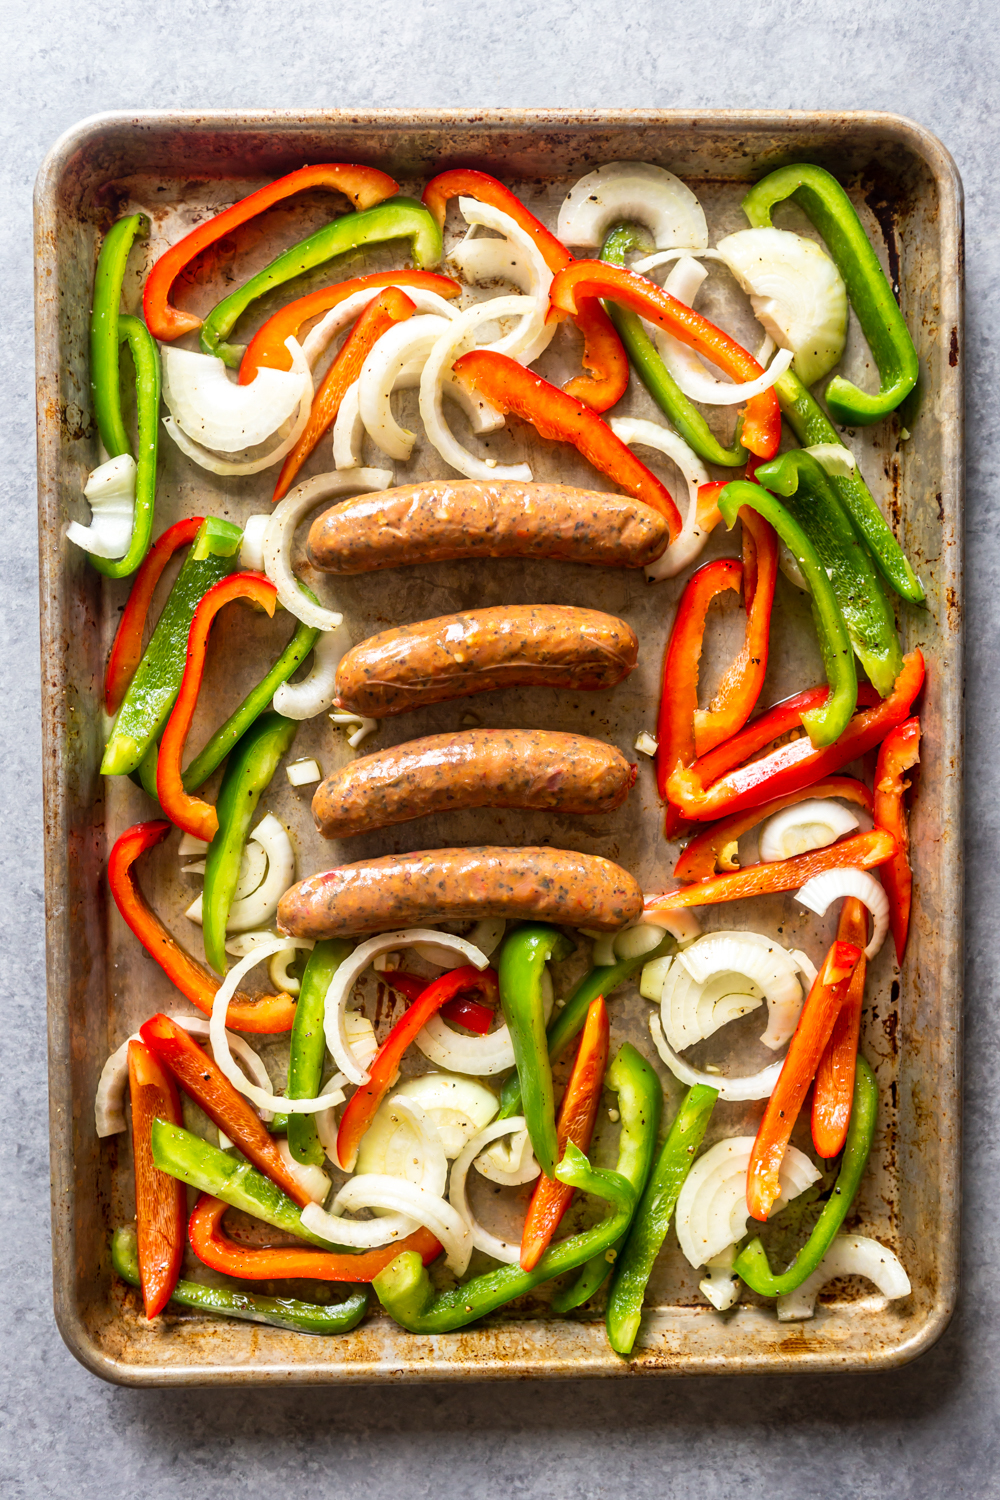 Raw peppers, onions and sausages on a sheet pan before going into the oven.